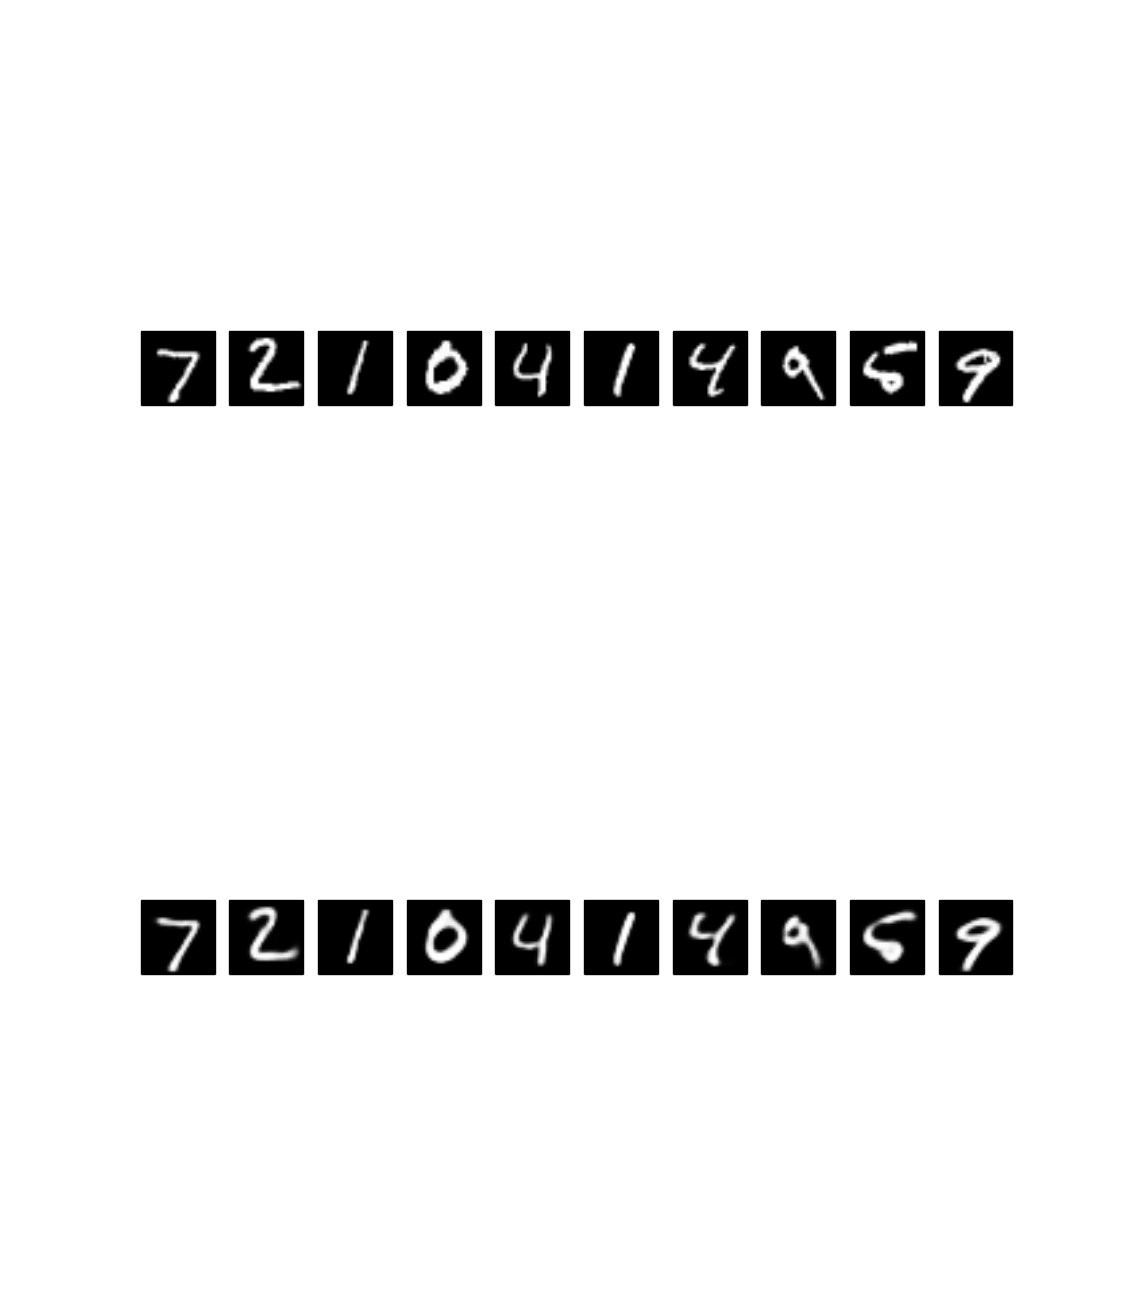 Mnist digits as reconstructed by the autoencoder